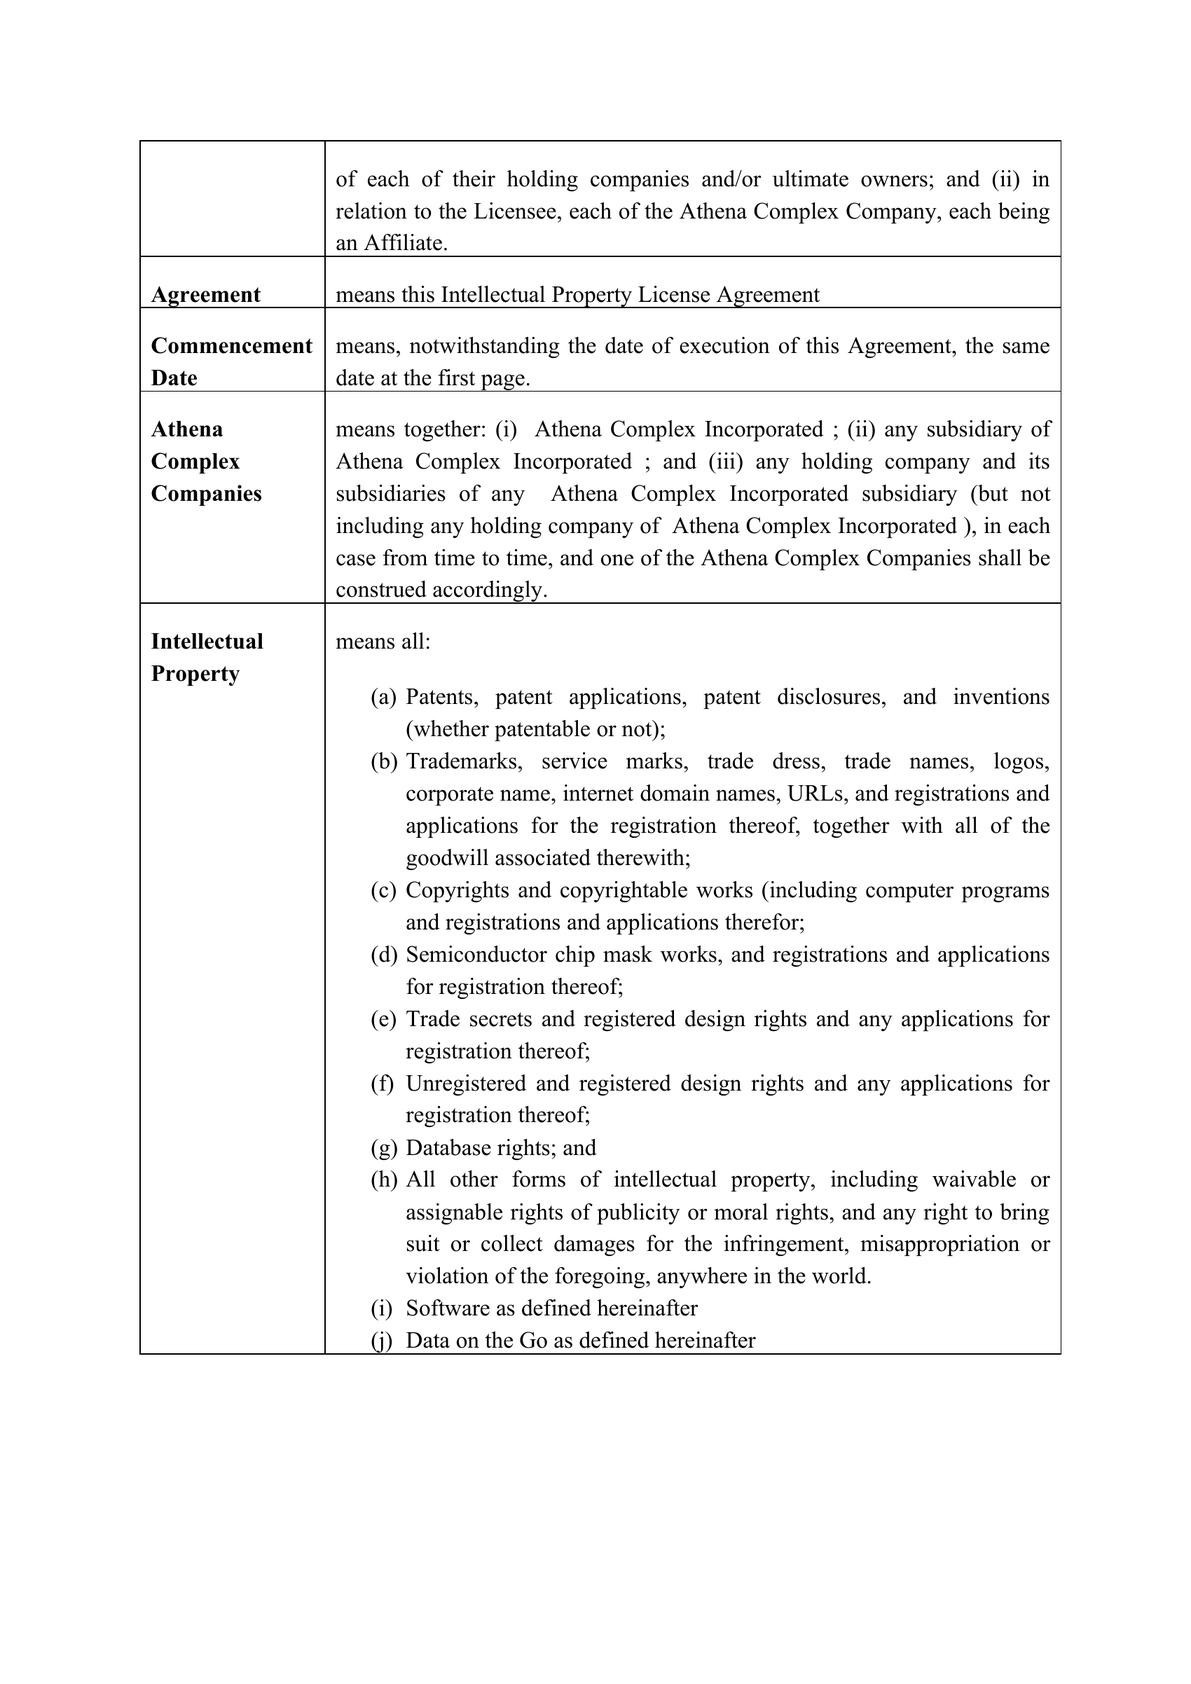 Intellectual Property License Agreement-1